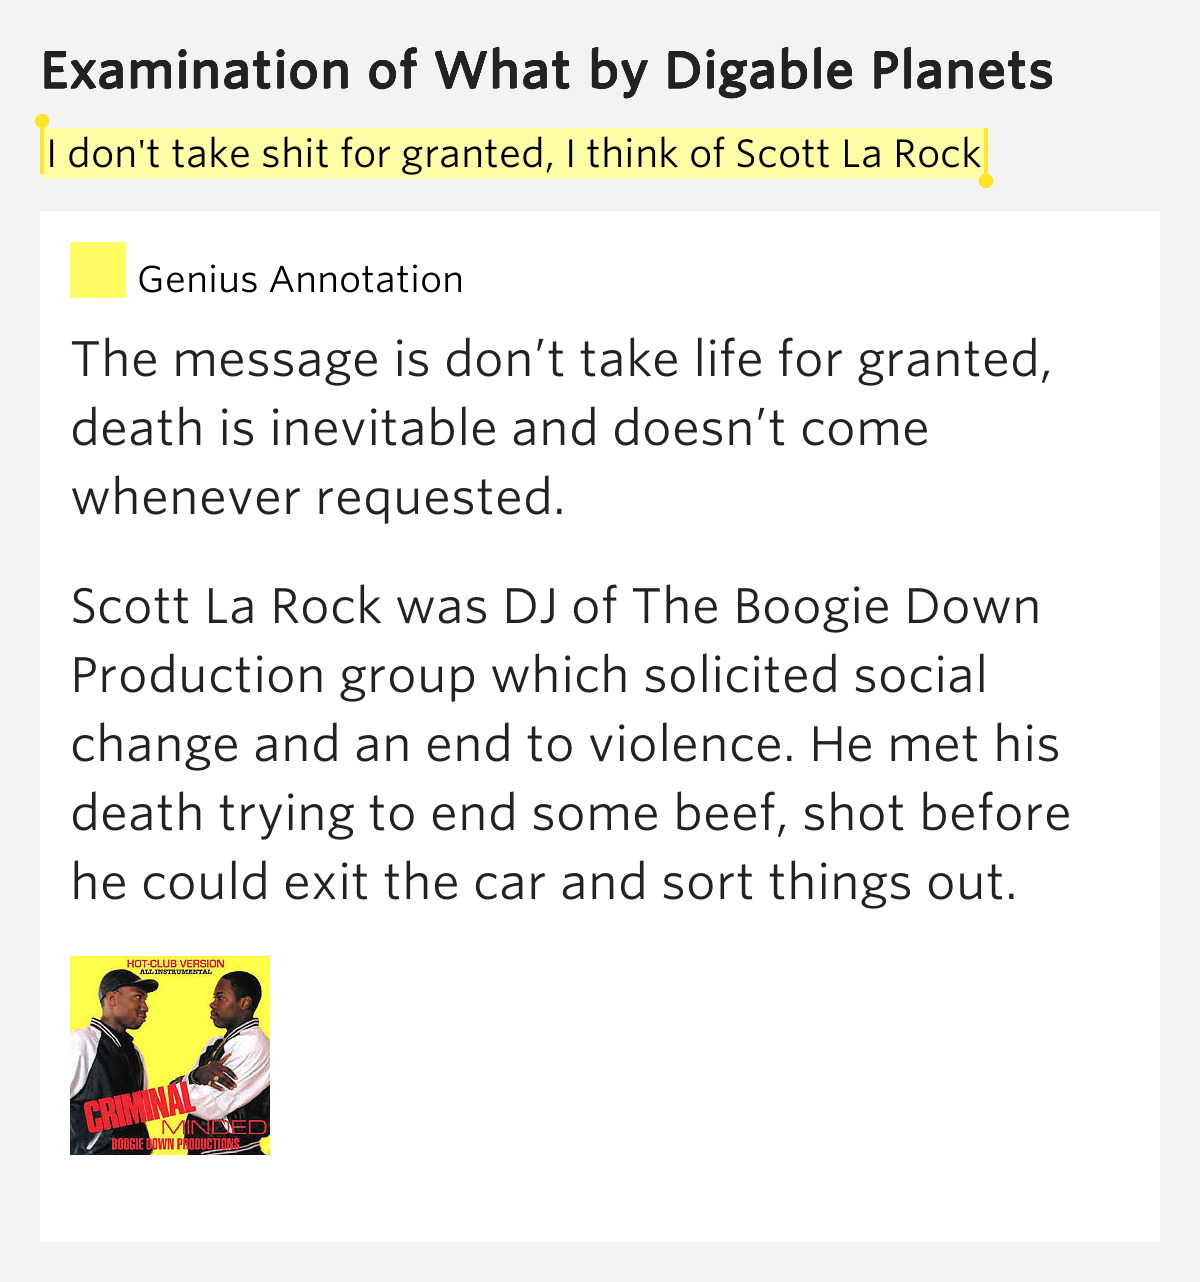 digable planets examination of what - photo #5